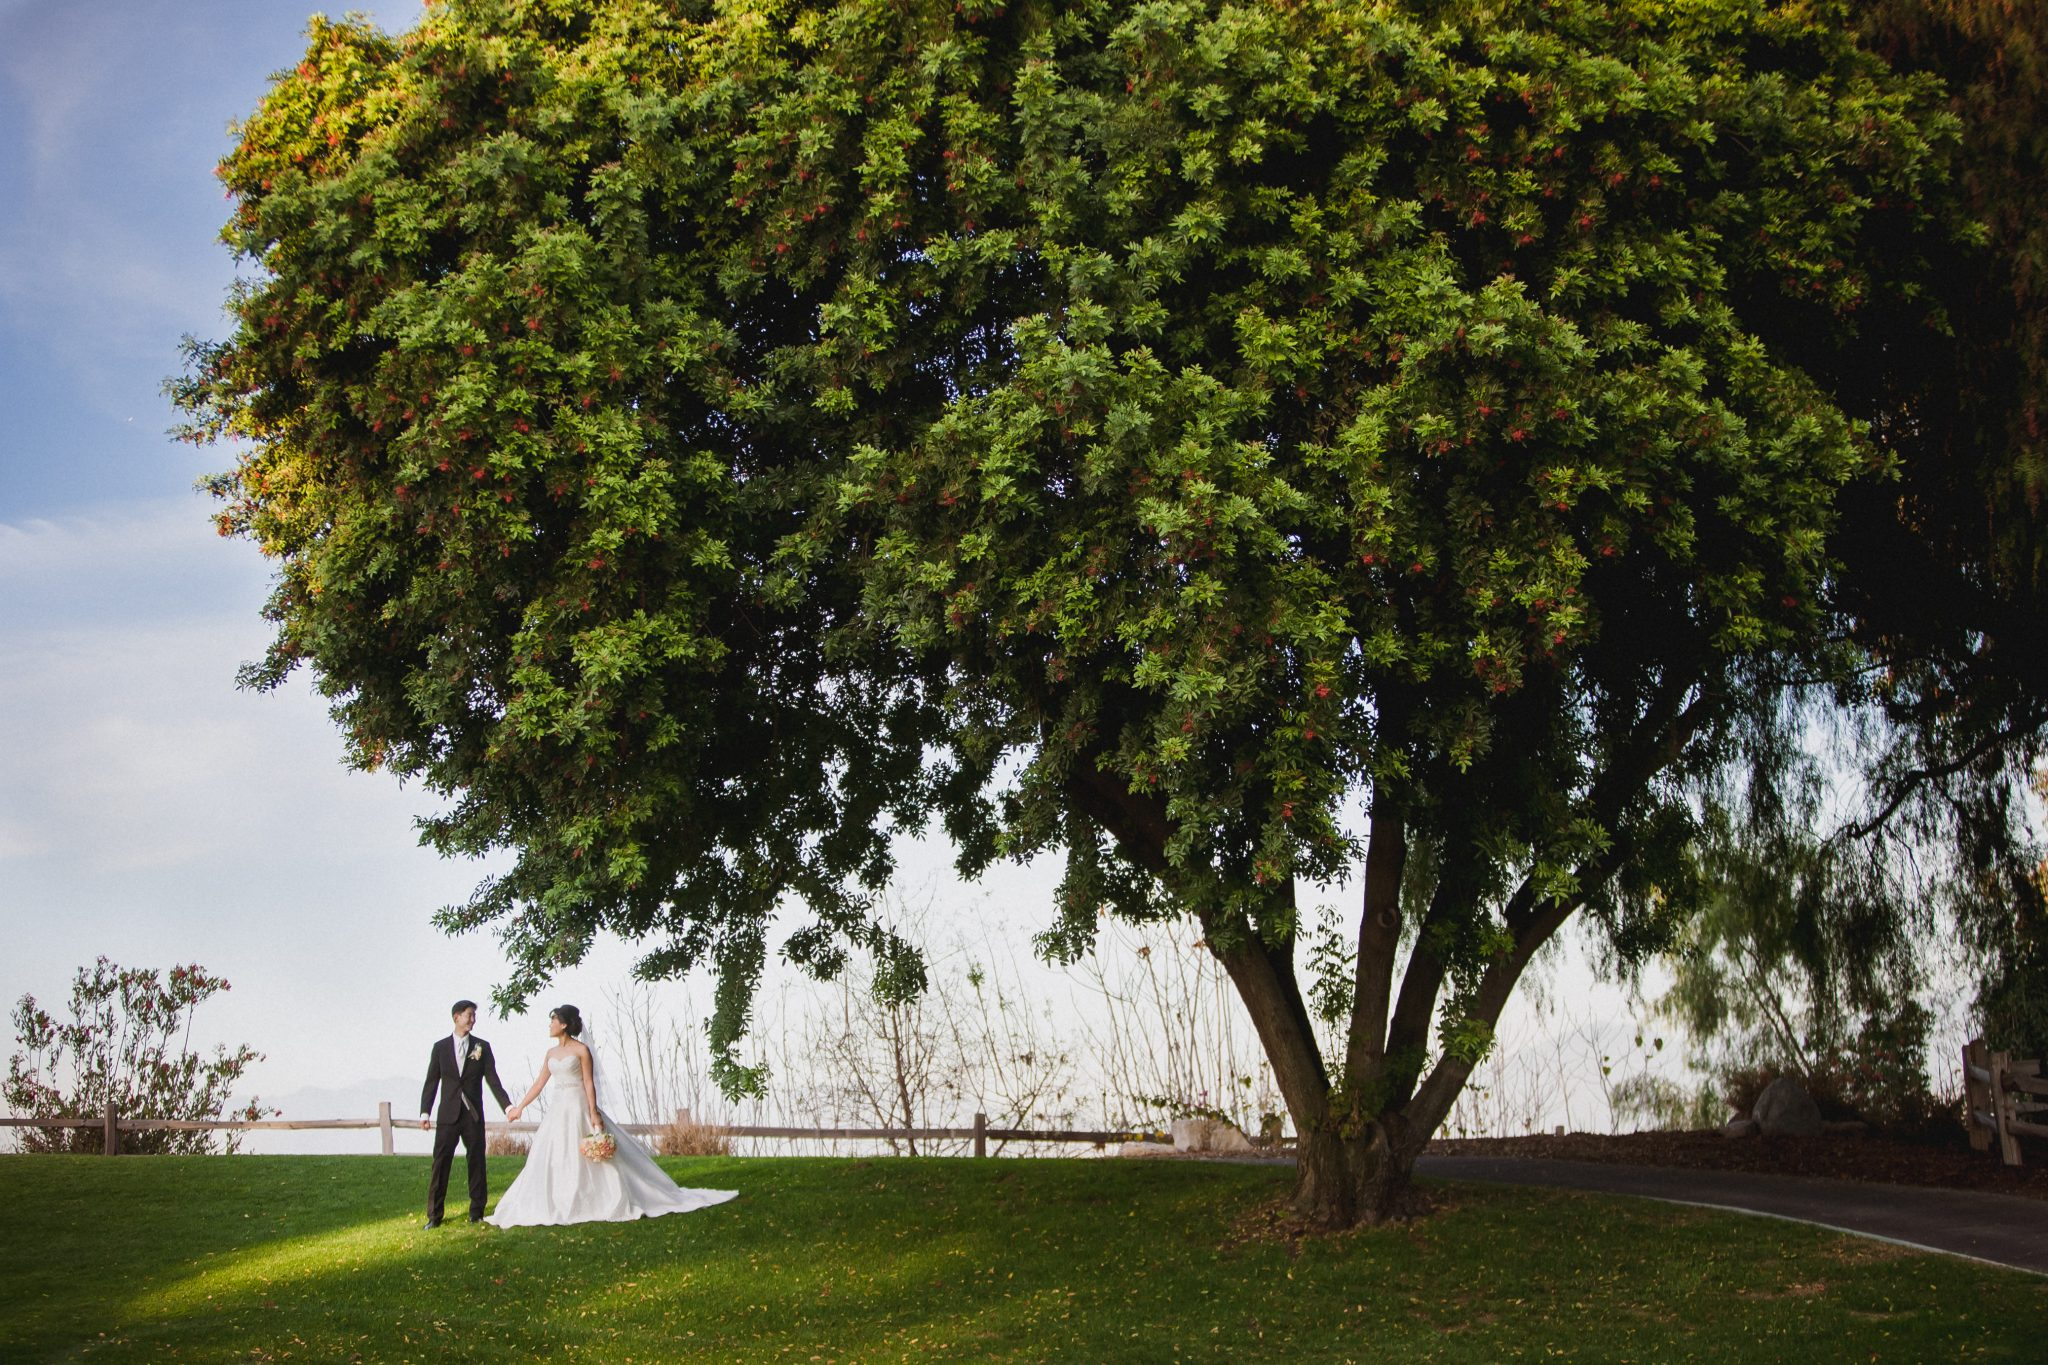 Portrait of the couple walking under a tree